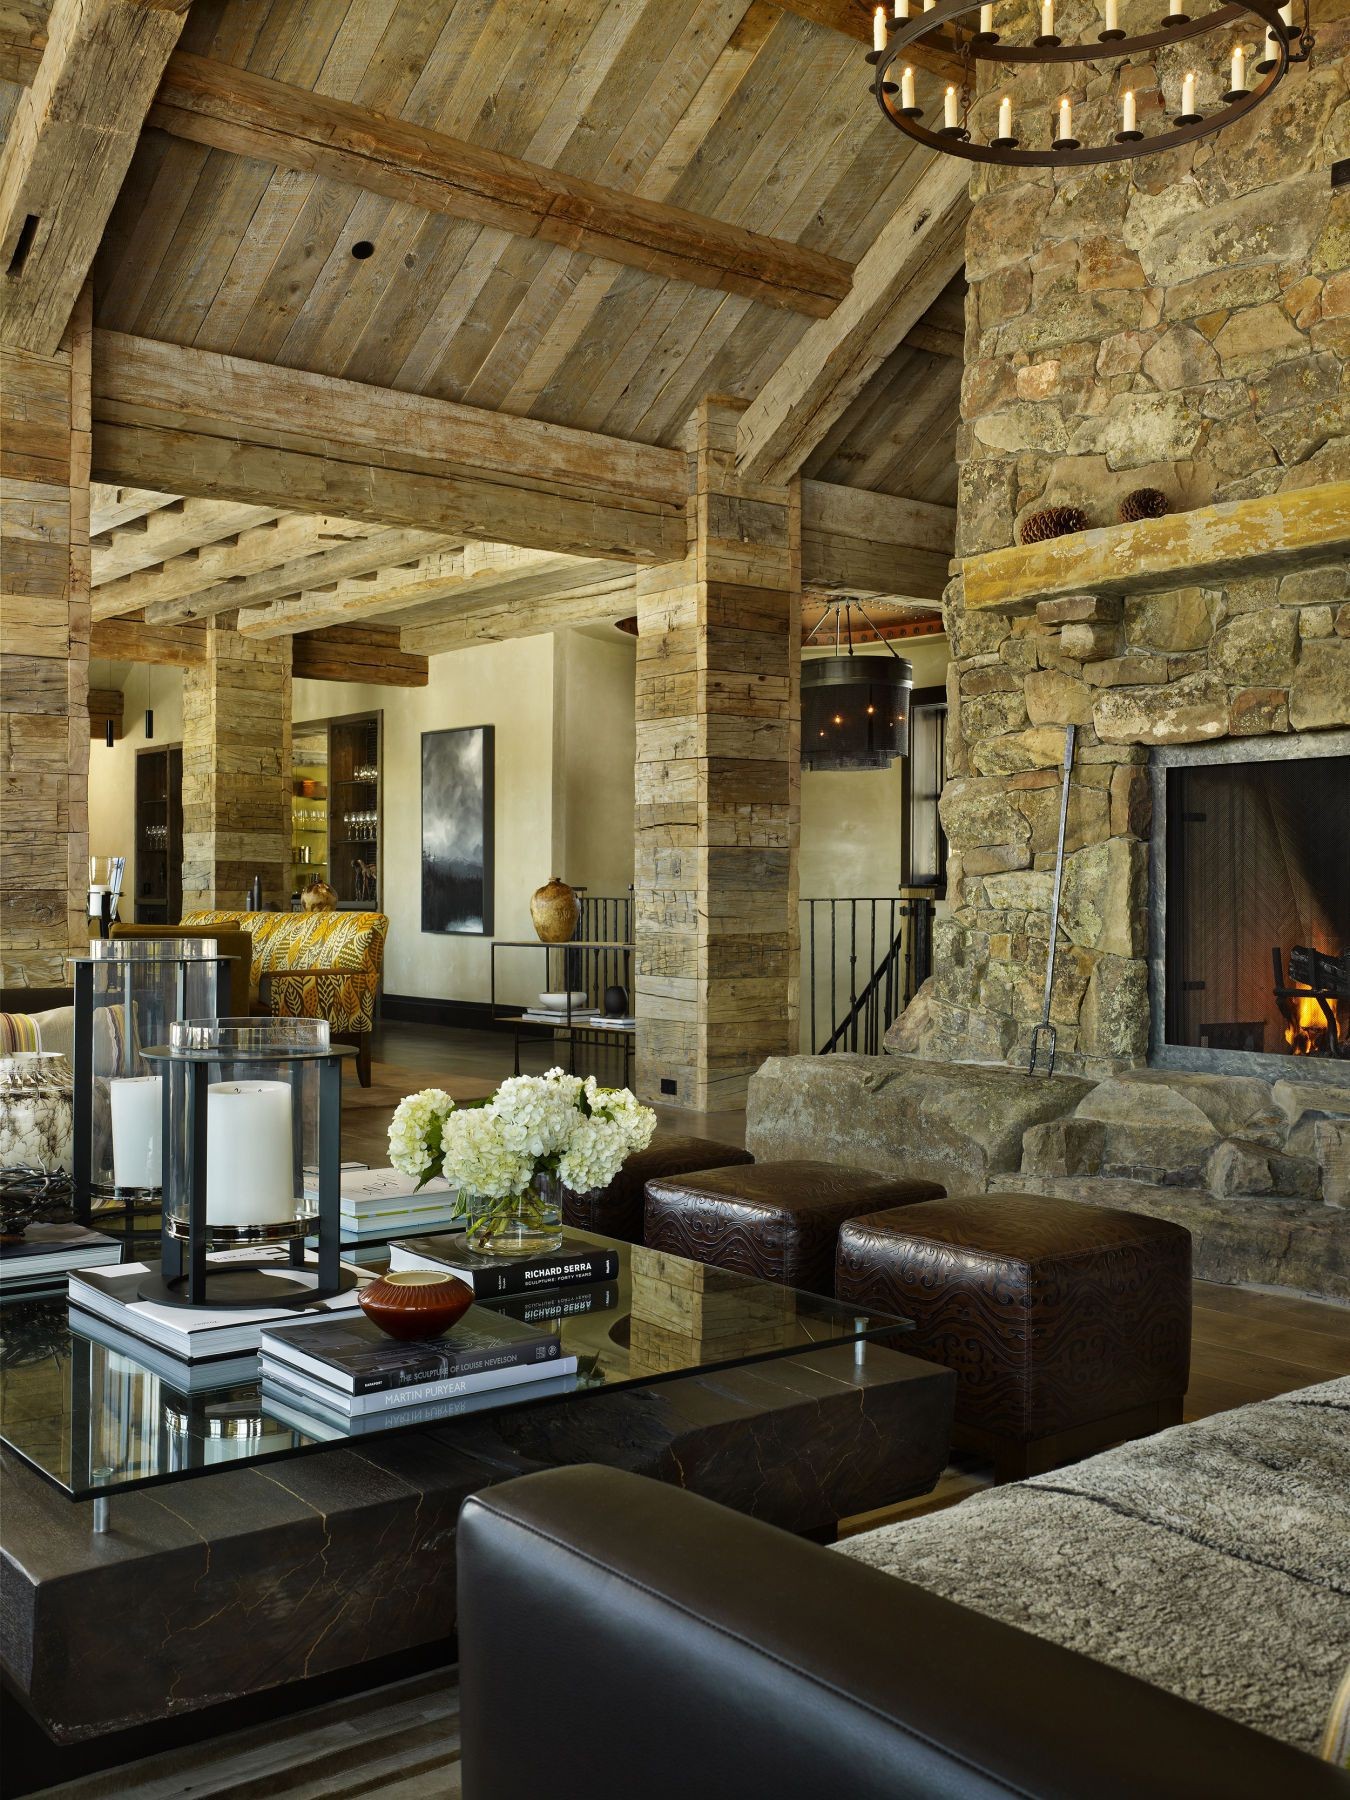 High Alpine Mountain Ranch wood country home log house interior fireplace